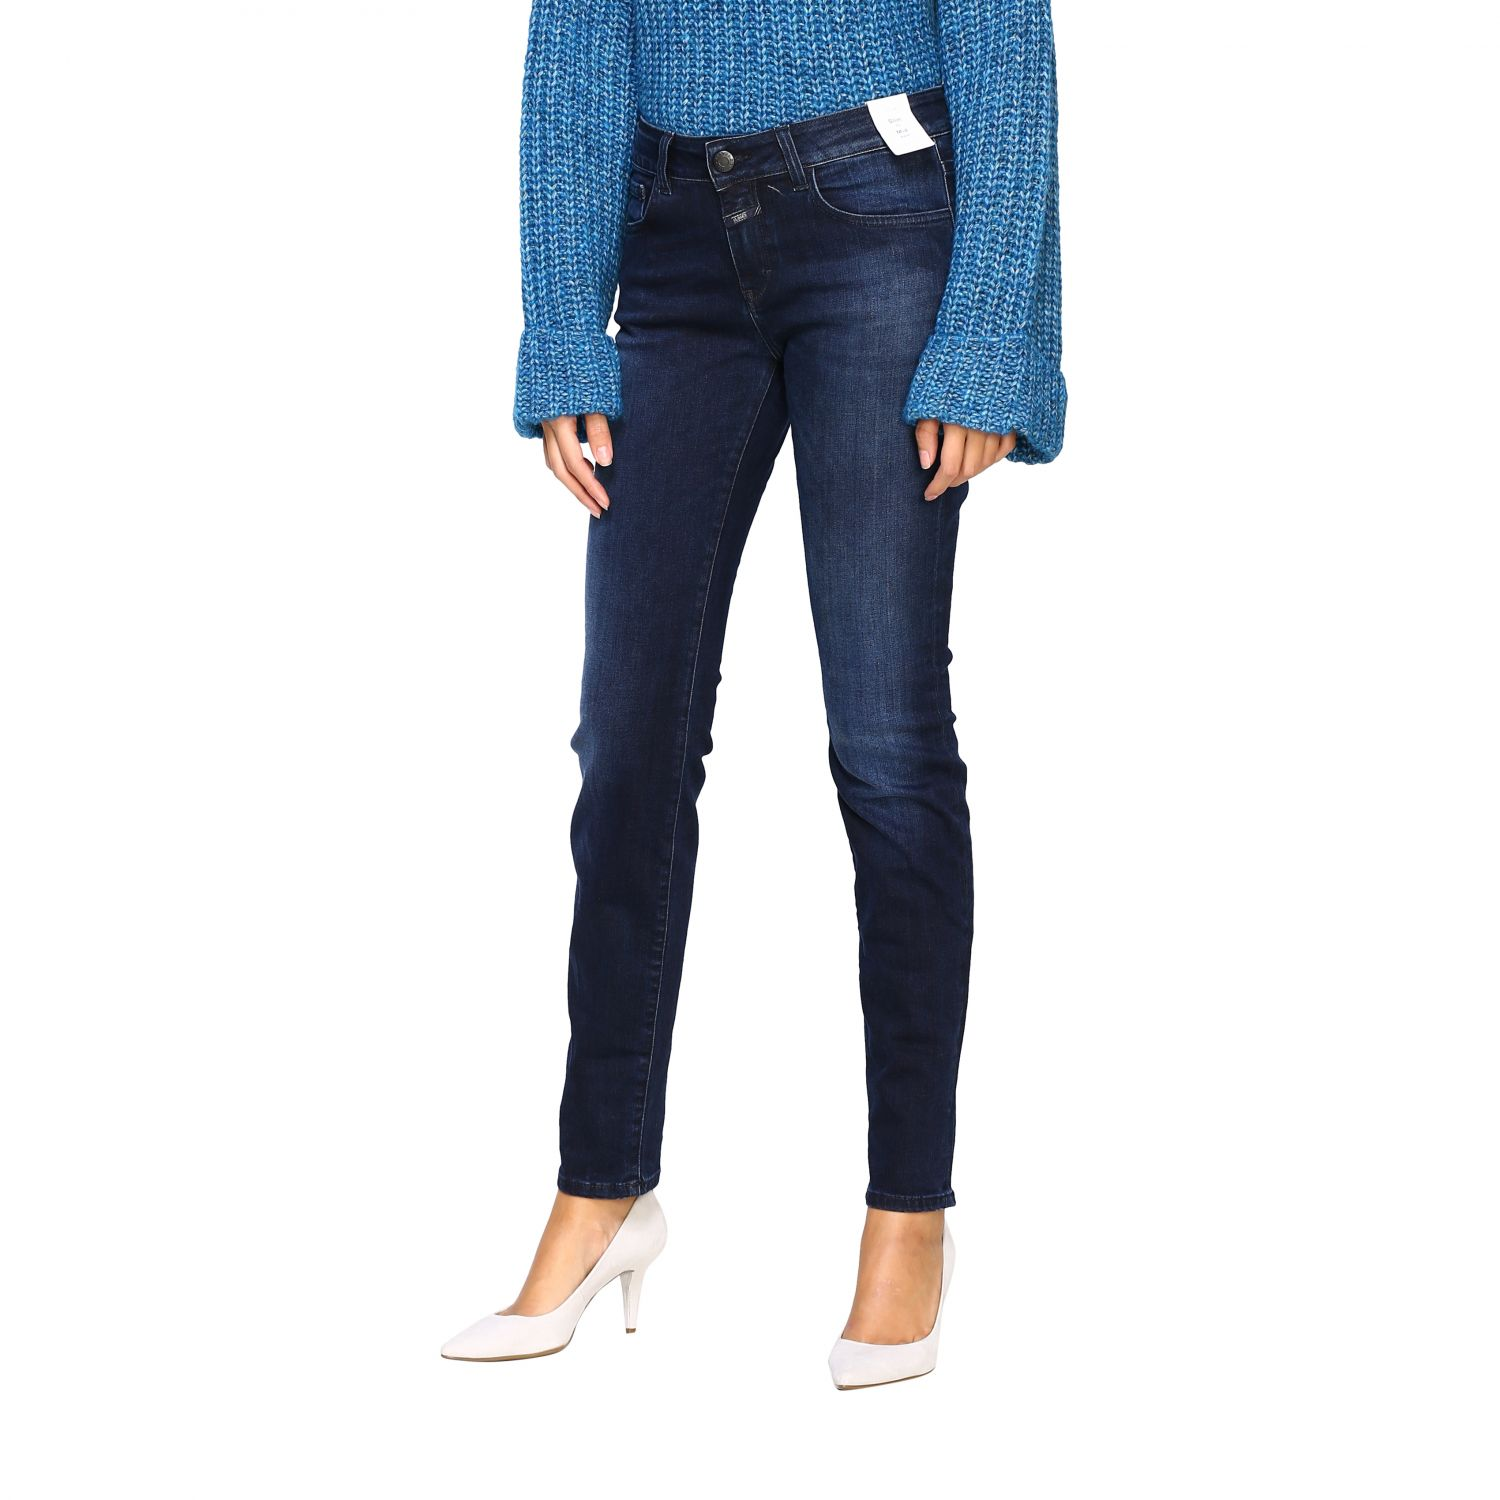 Jeans Closed: Jeans donna Closed blue 4